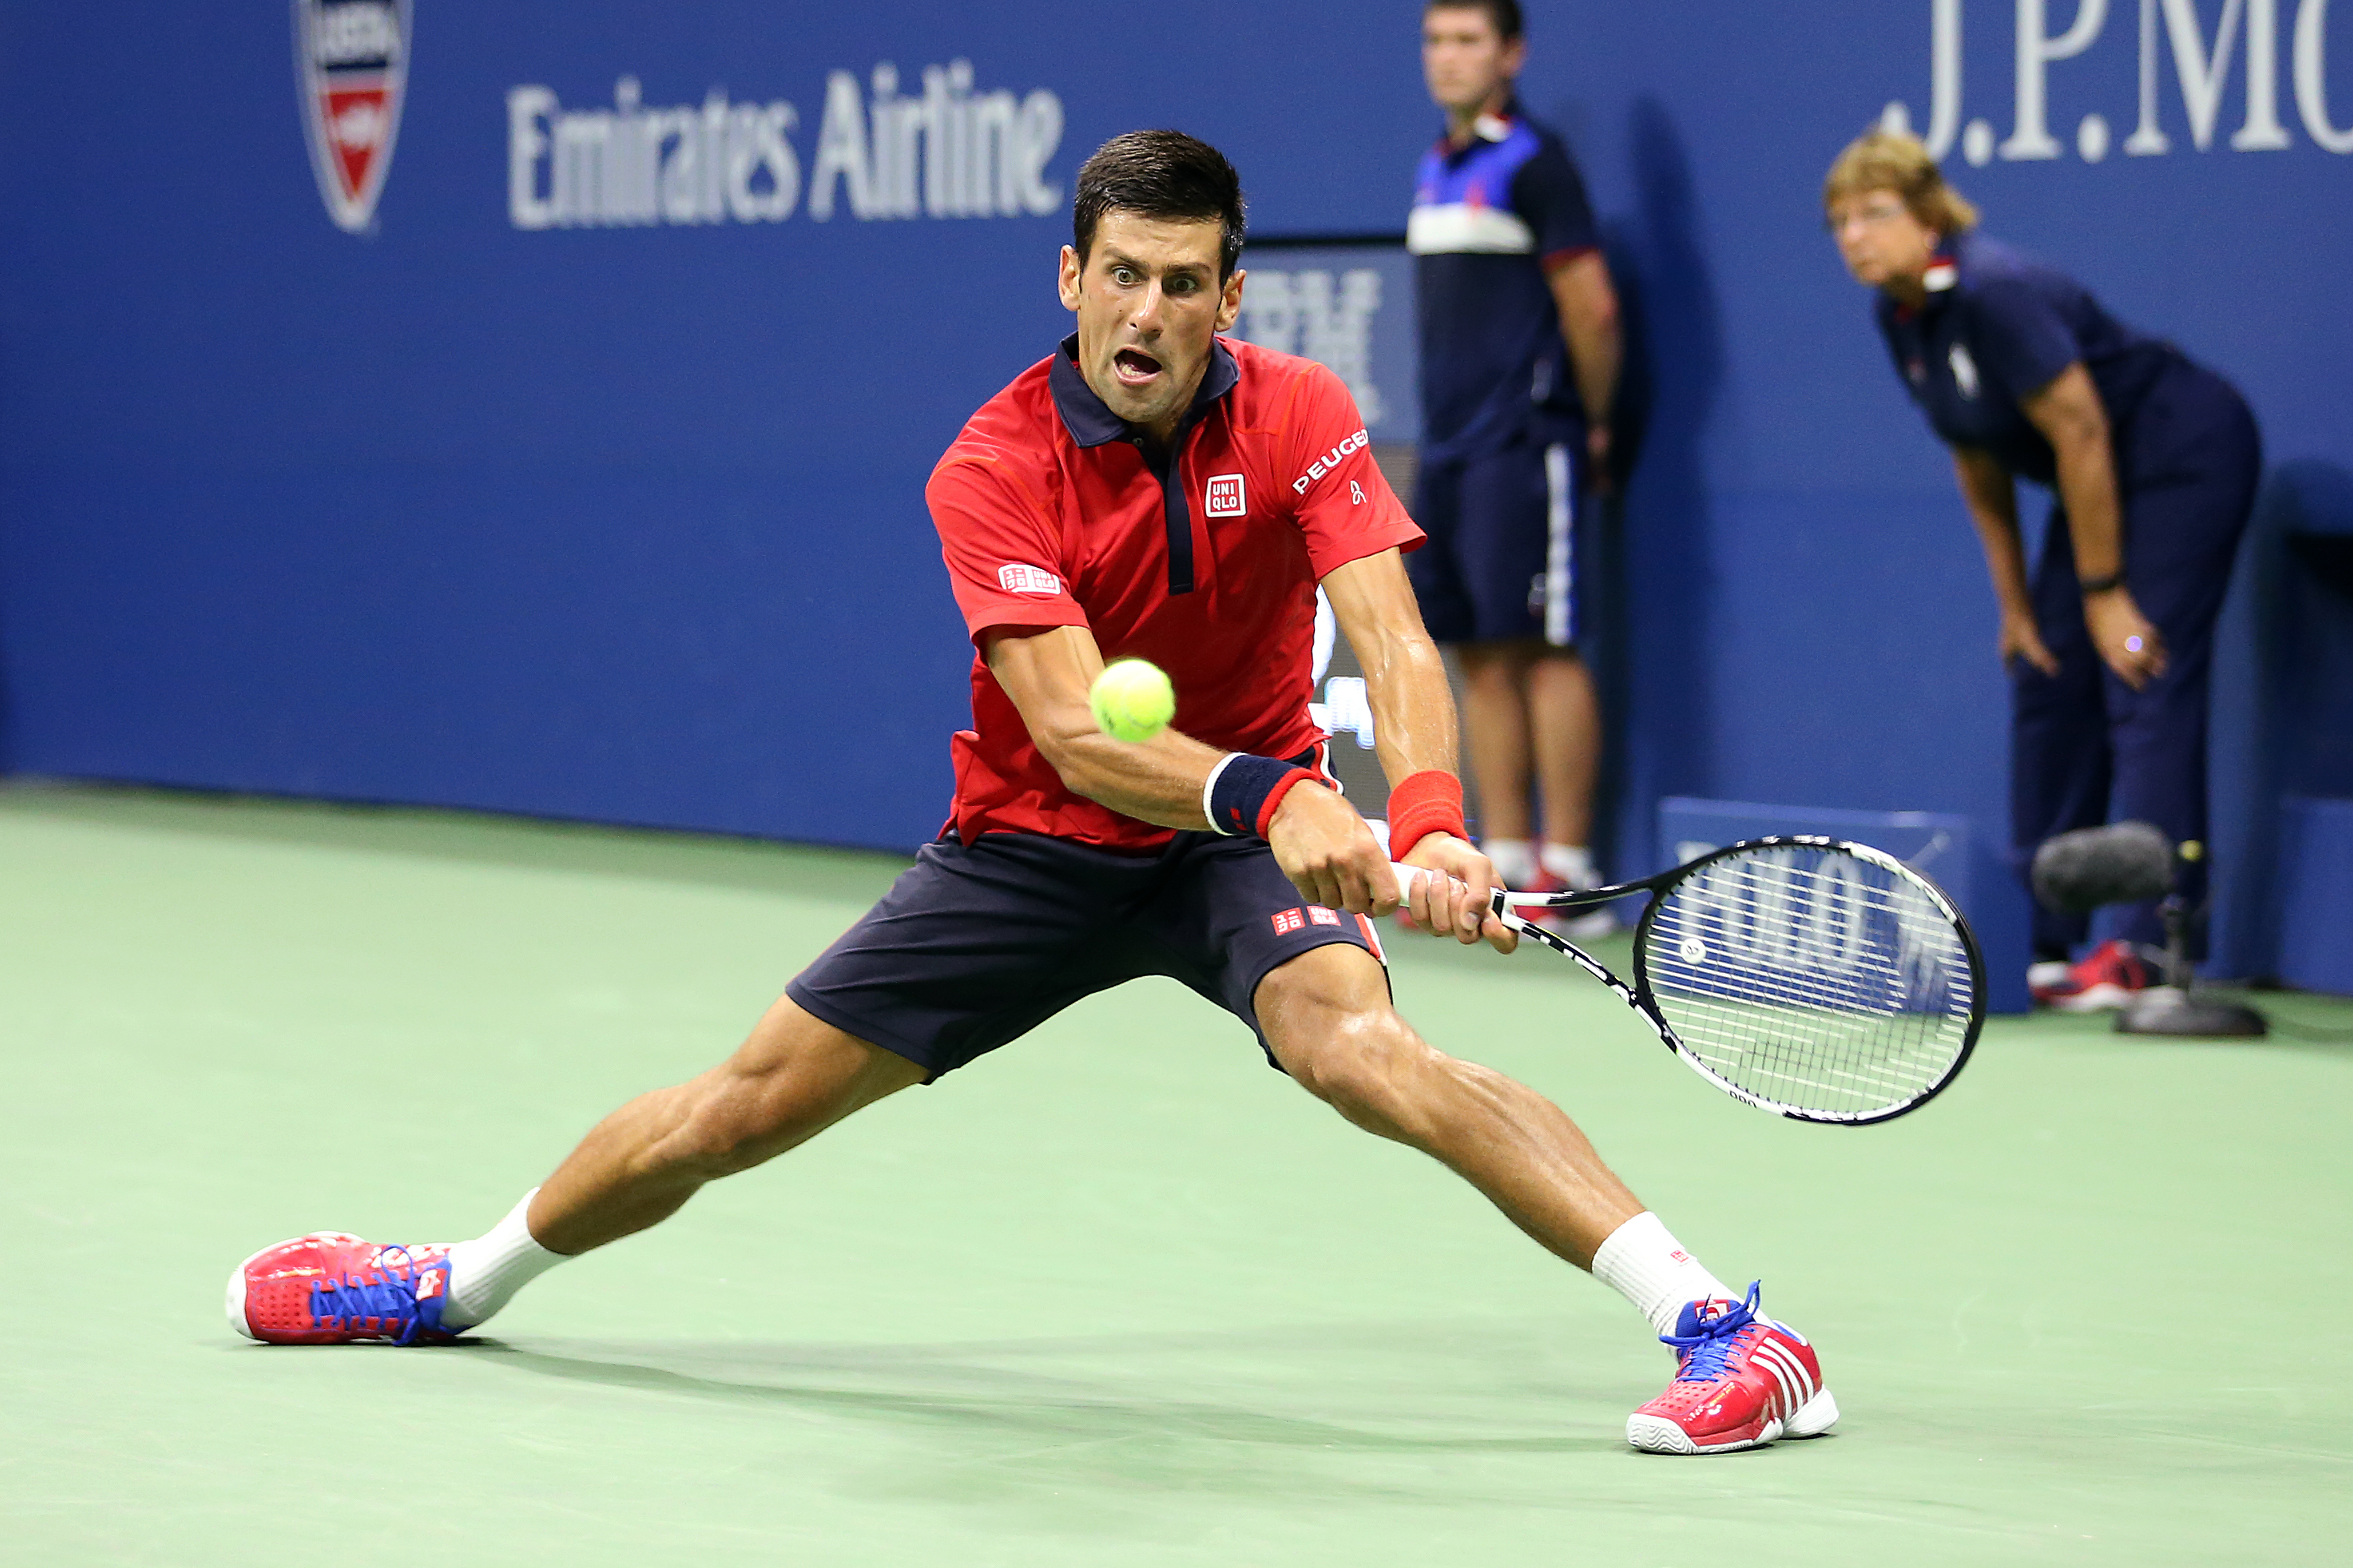 Current world number 13 Novak Djokovic of Serbia has announced that he has ended his coaching partnerships with both Radek Stepanek and Andre Agassi